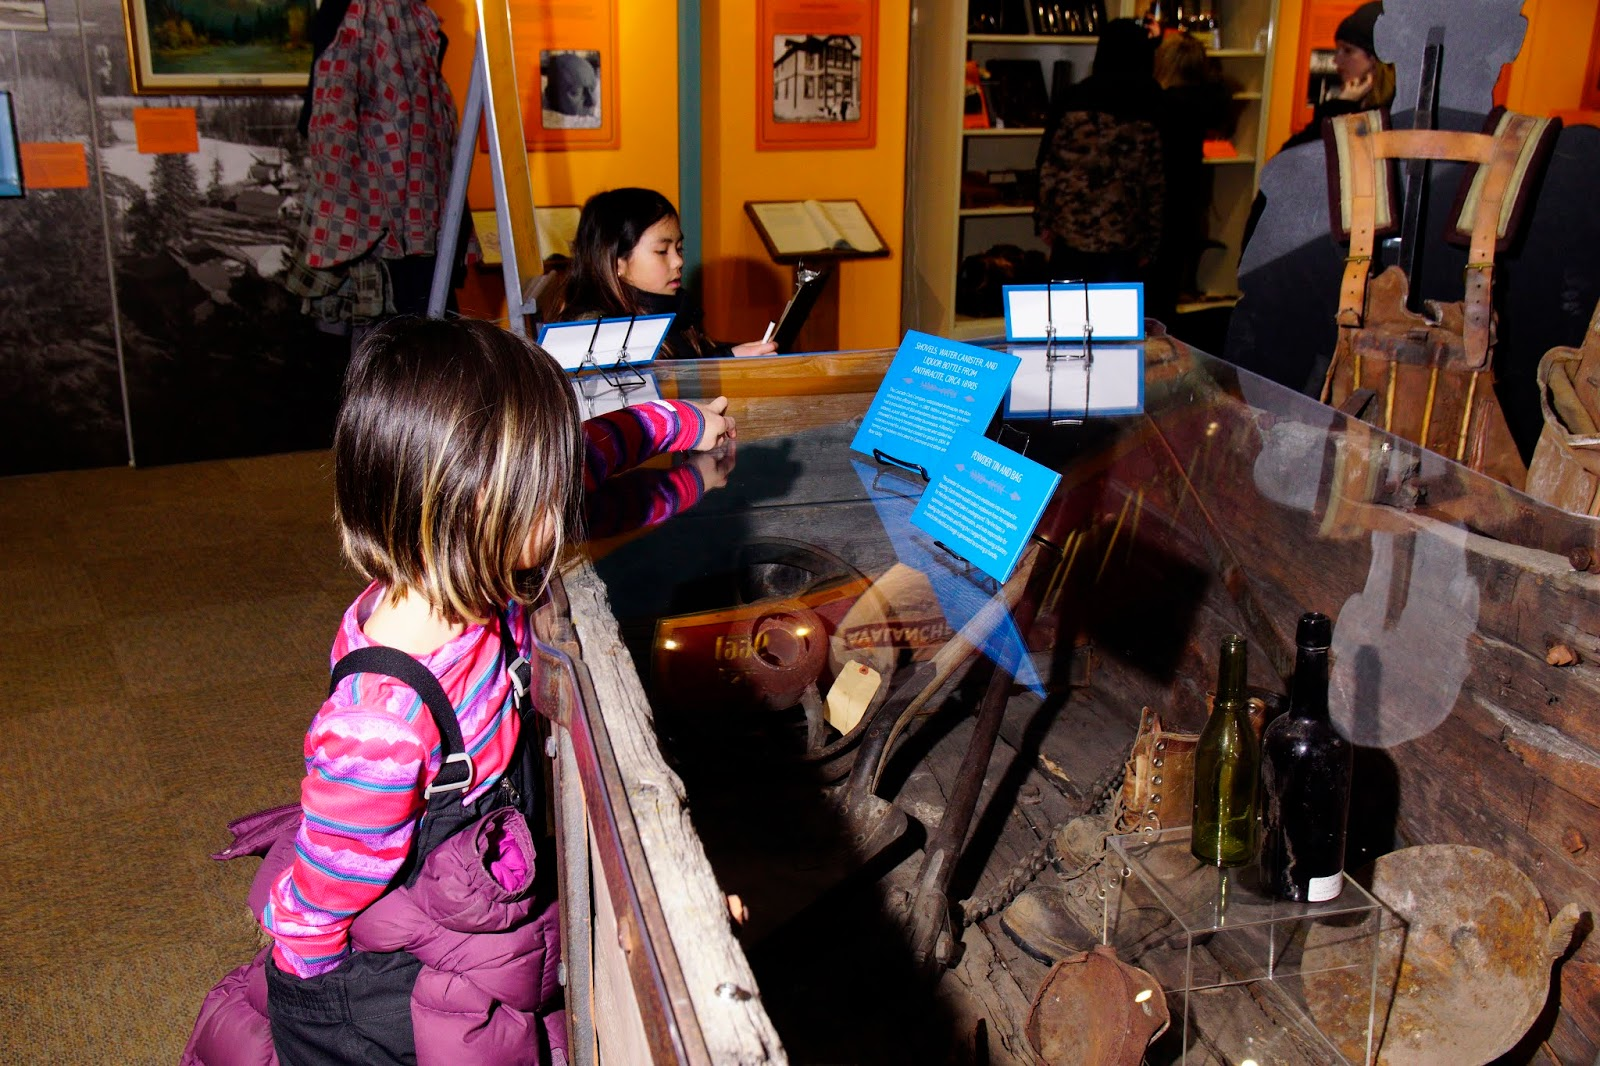 Mining artifacts at Canmore Museum